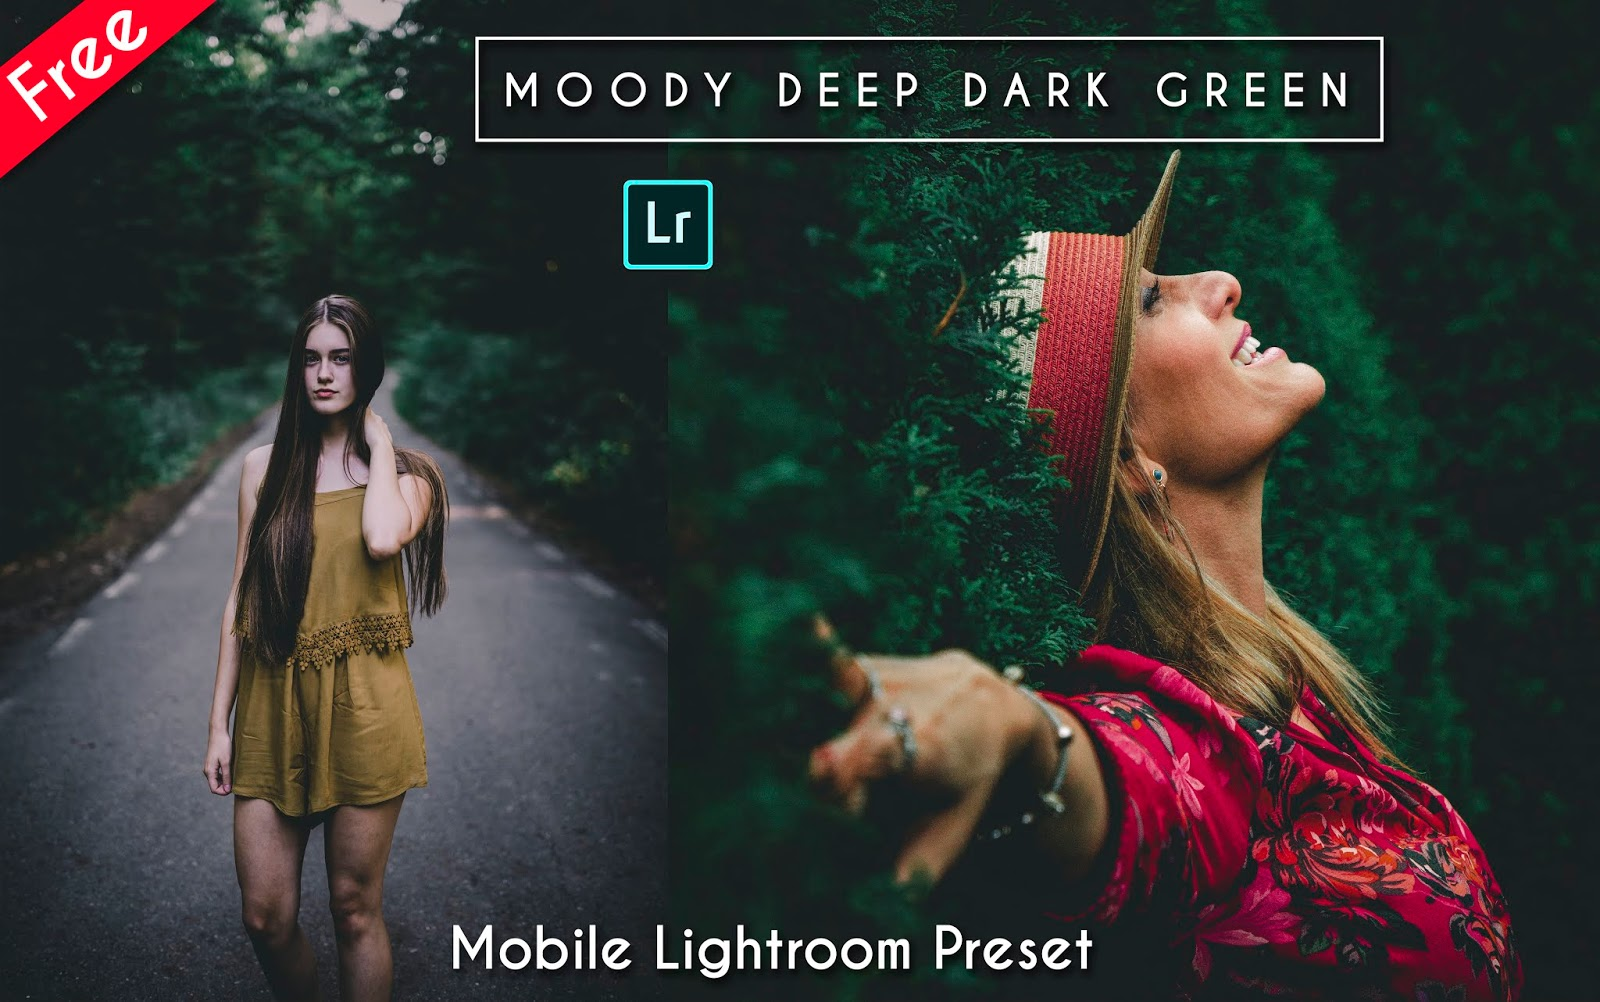 Download Moody Deep Dark Green Mobile Lightroom Preset for Free | How to Edit Your Photos Like Moody Deep Dark Green Effect in Mobile Lightroom App